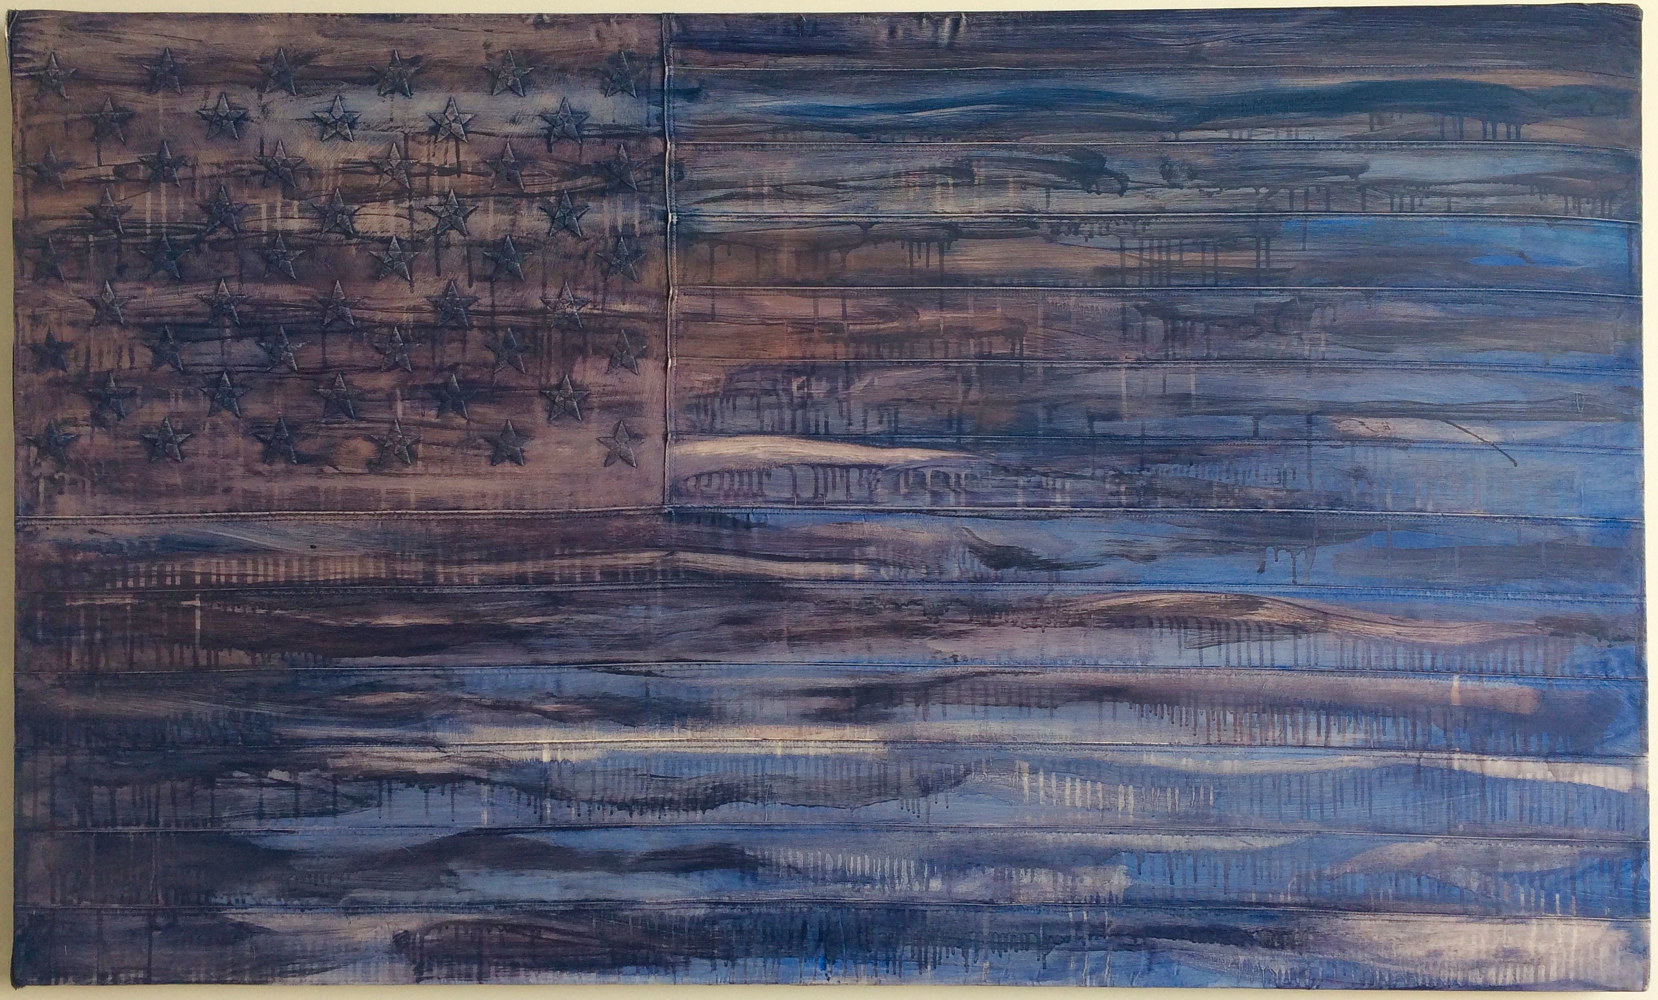 Oil painting Crepuscular Blues, 3 x 5, Oil on sewn and embroidered canvas by Edward Miller